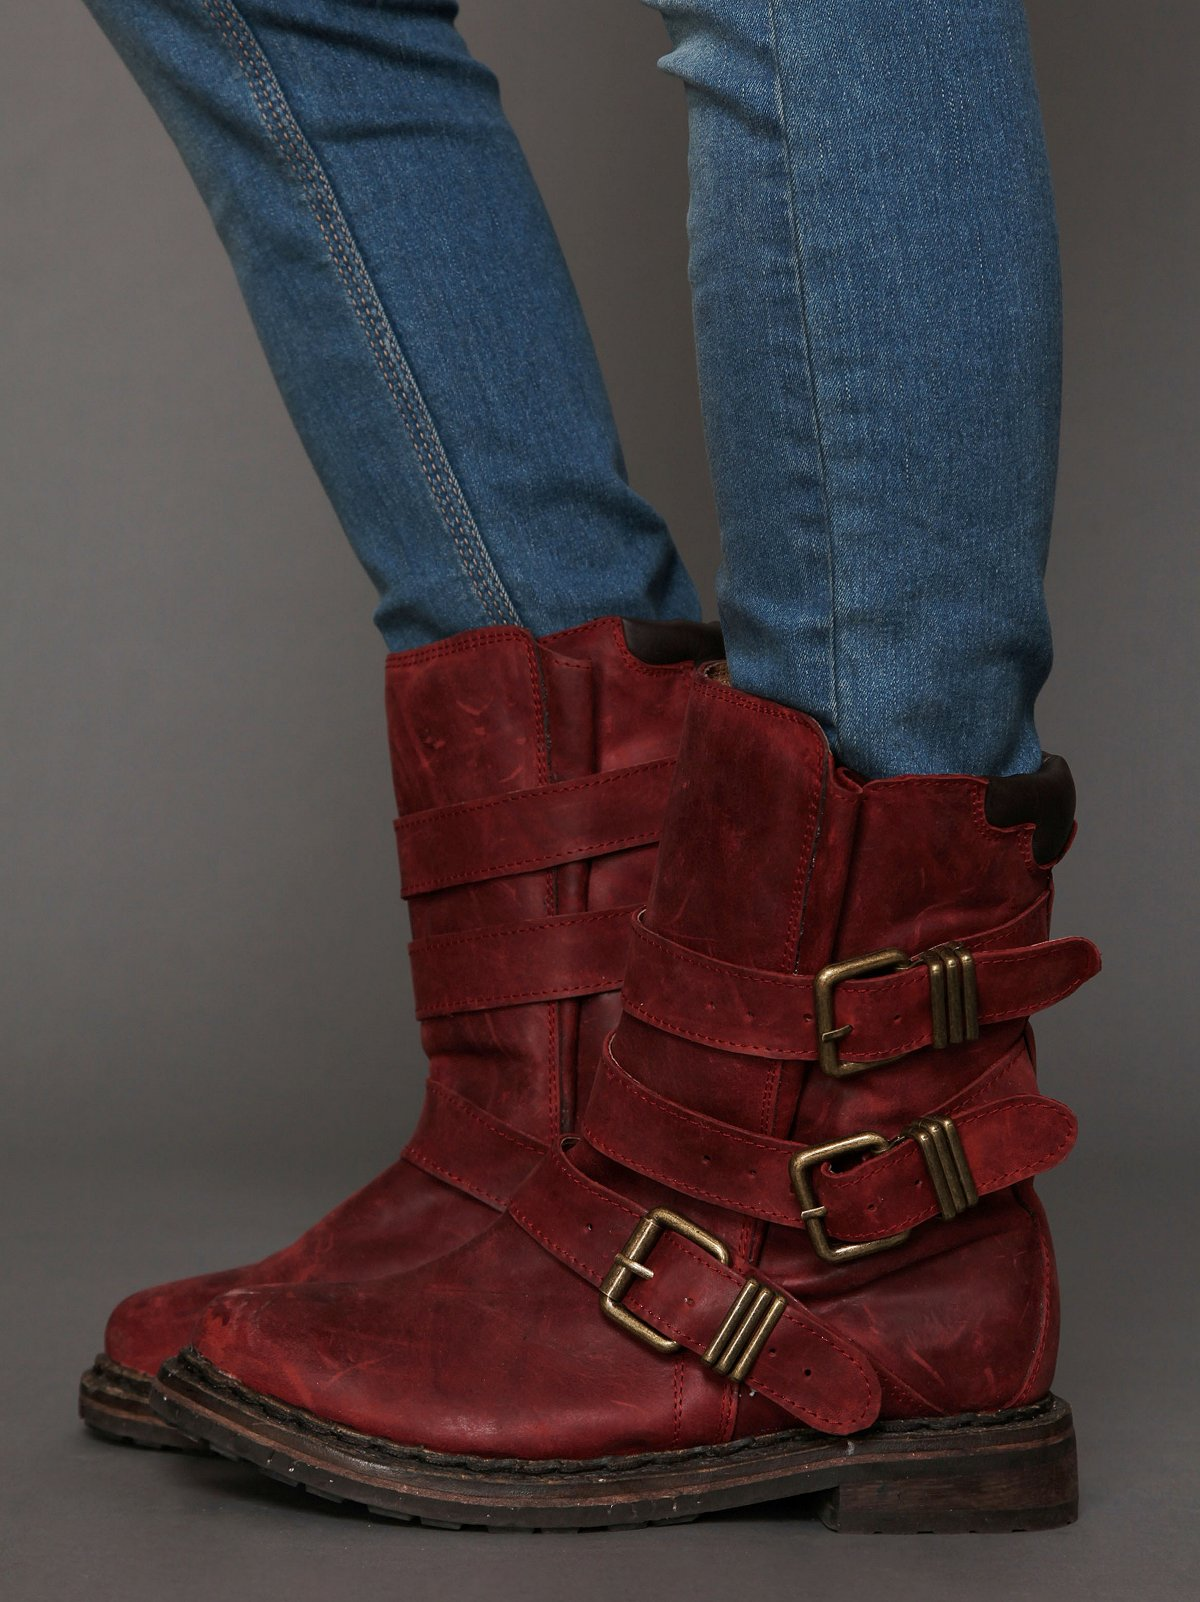 Lee Boot